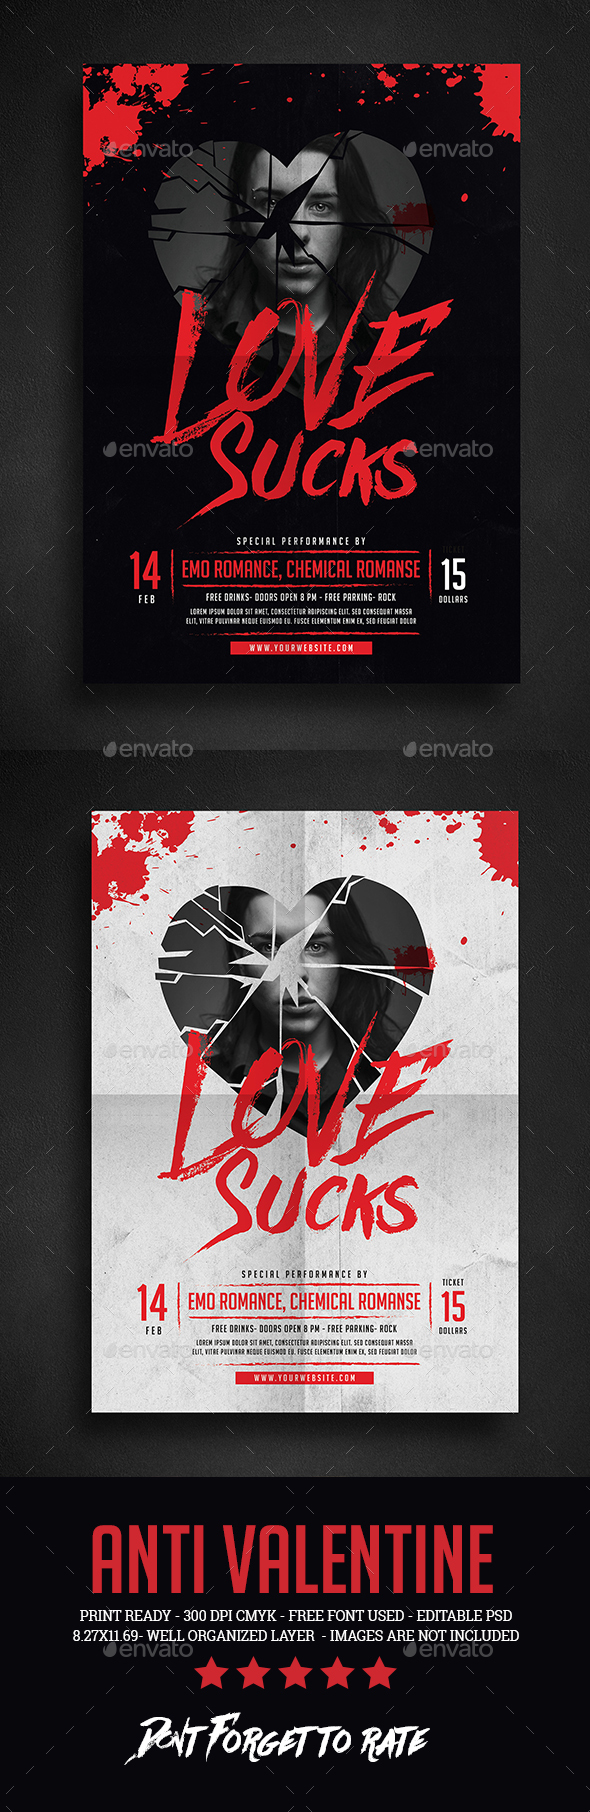 Anti Valentine Event Flyer - Events Flyers